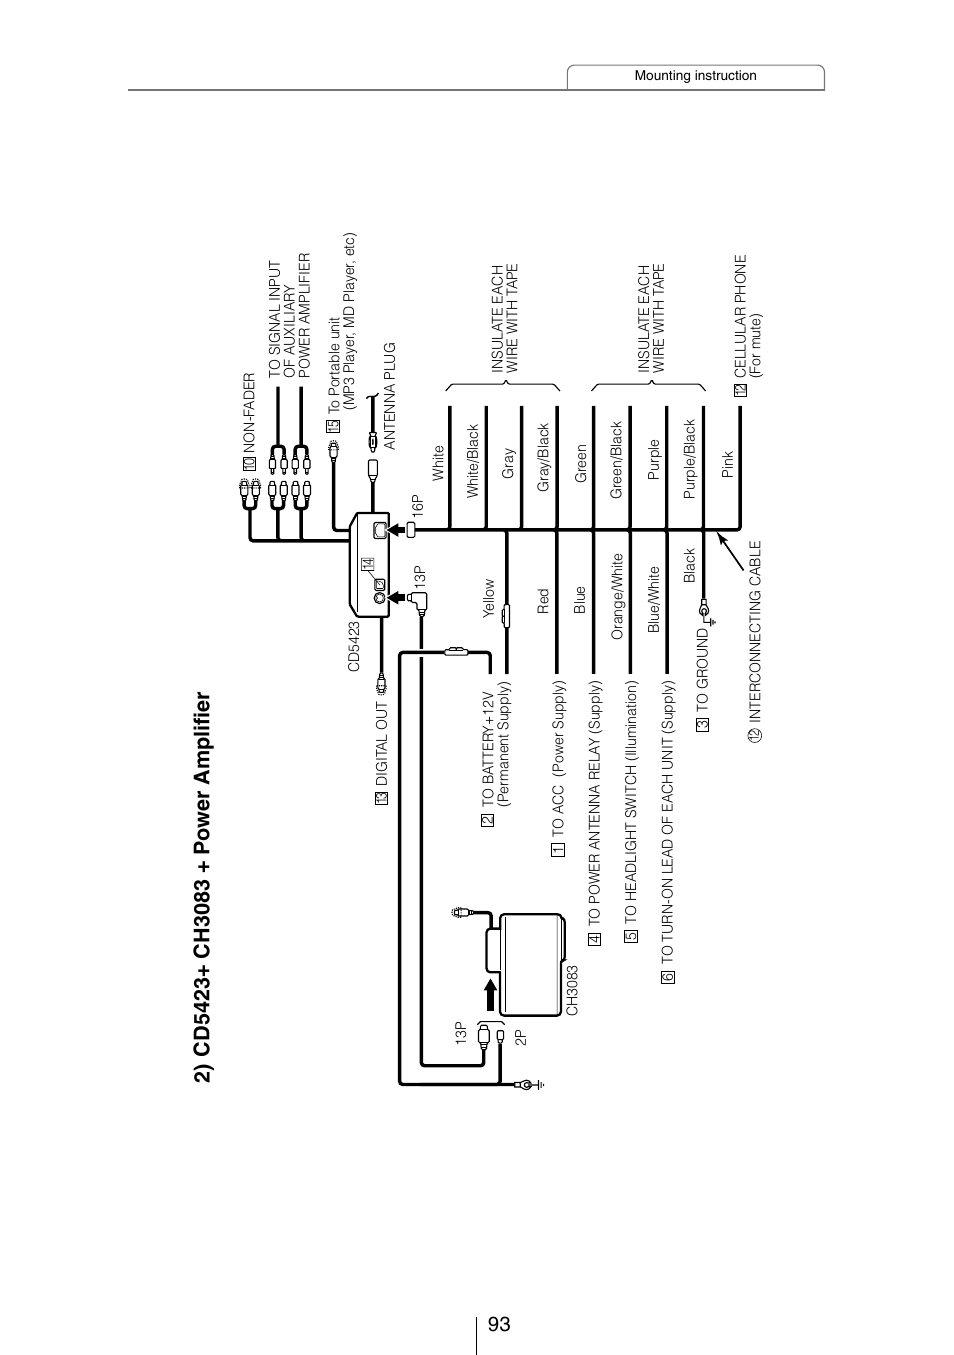 hight resolution of eclipse fujitsu ten cd5423 user manual page 93 96 eclipse model cd5423 wiring diagram